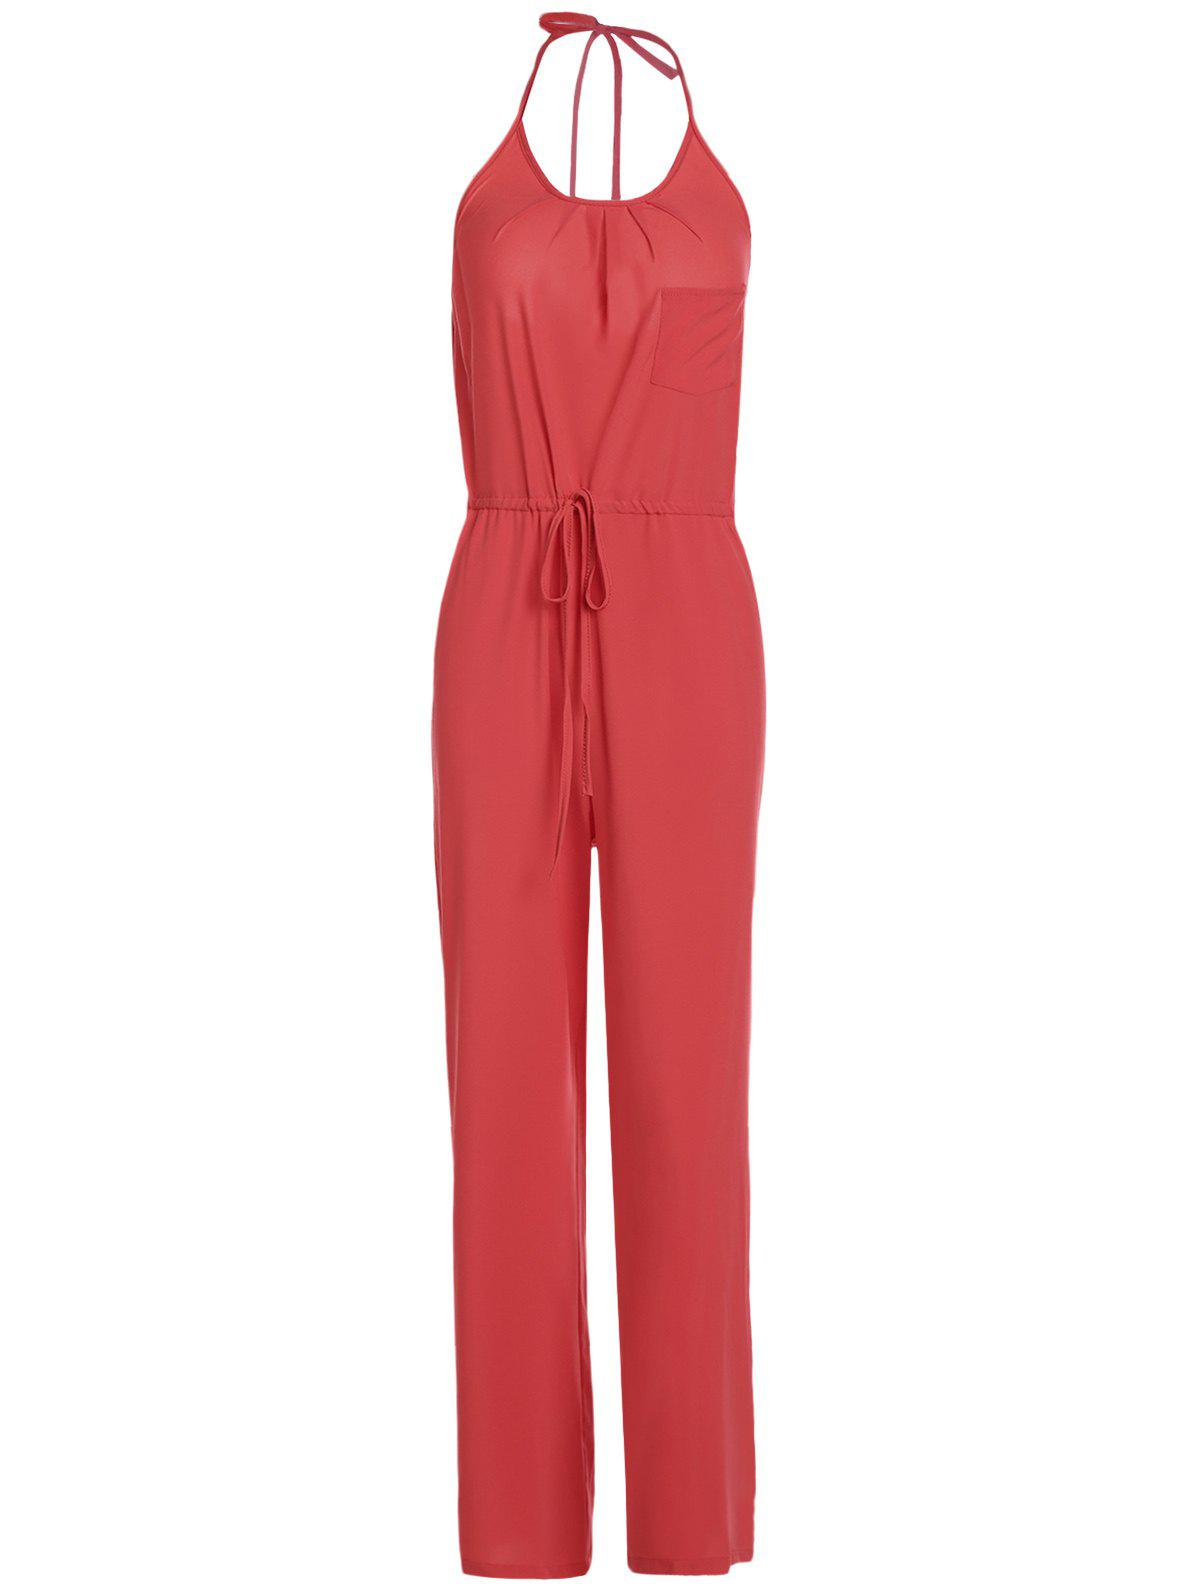 Shops Chic Solid Color Spaghetti Strap Wide Leg Loose Jumpsuit For Women